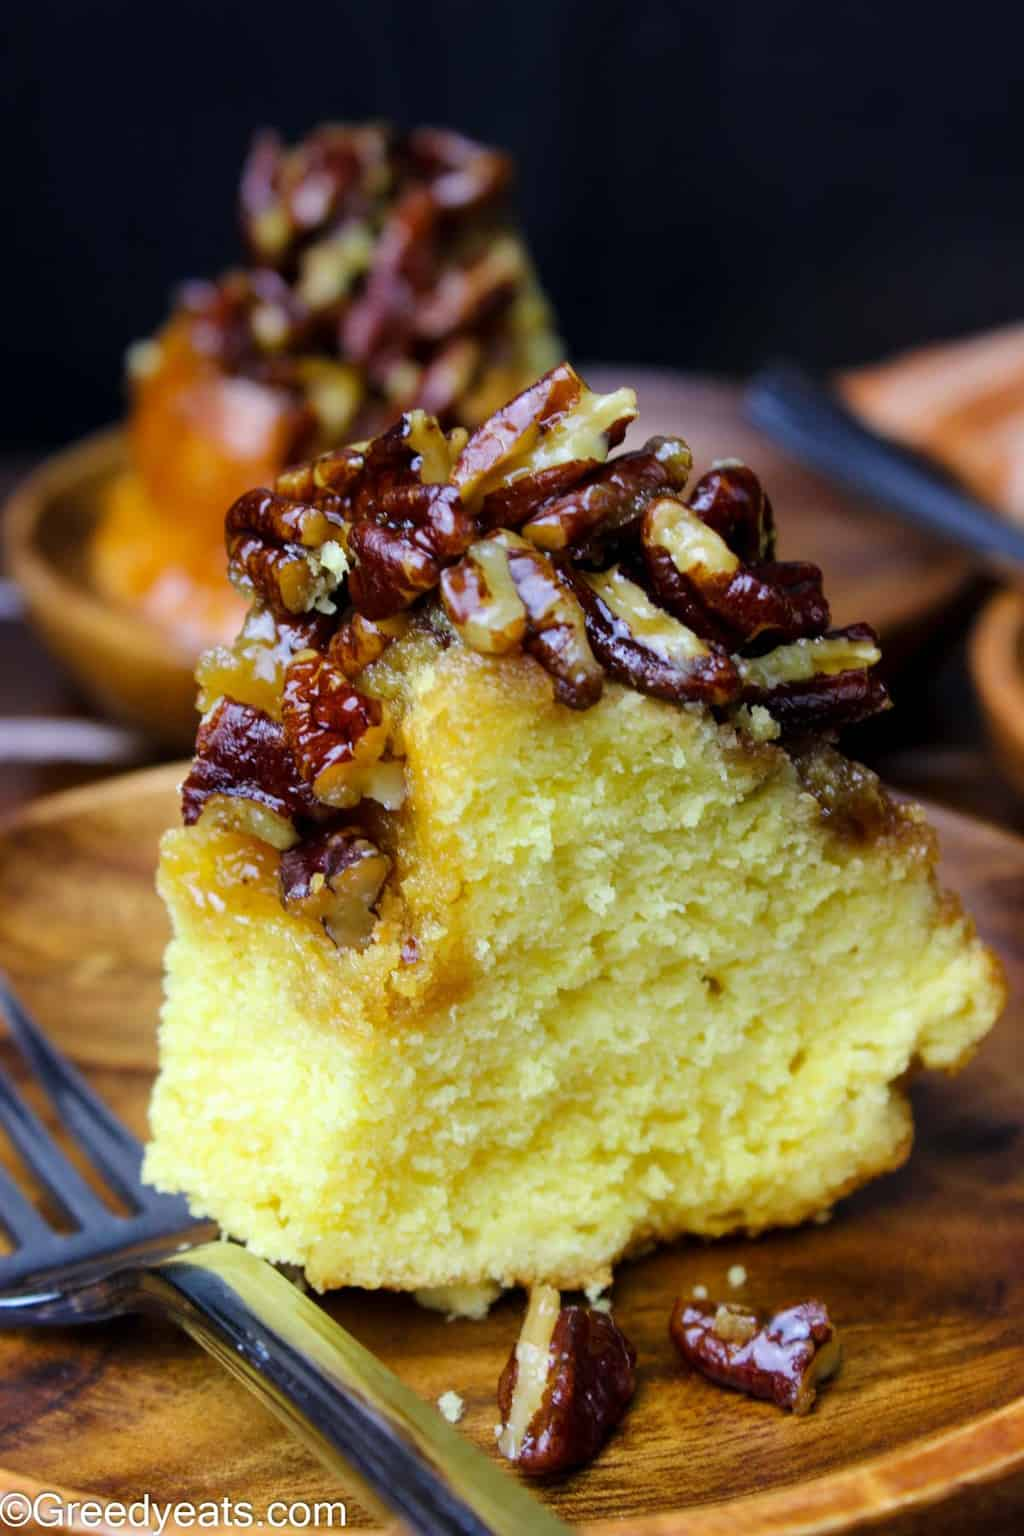 Buttery pound cake with sticky and caramel-y pecan filling slice on wooden plate.